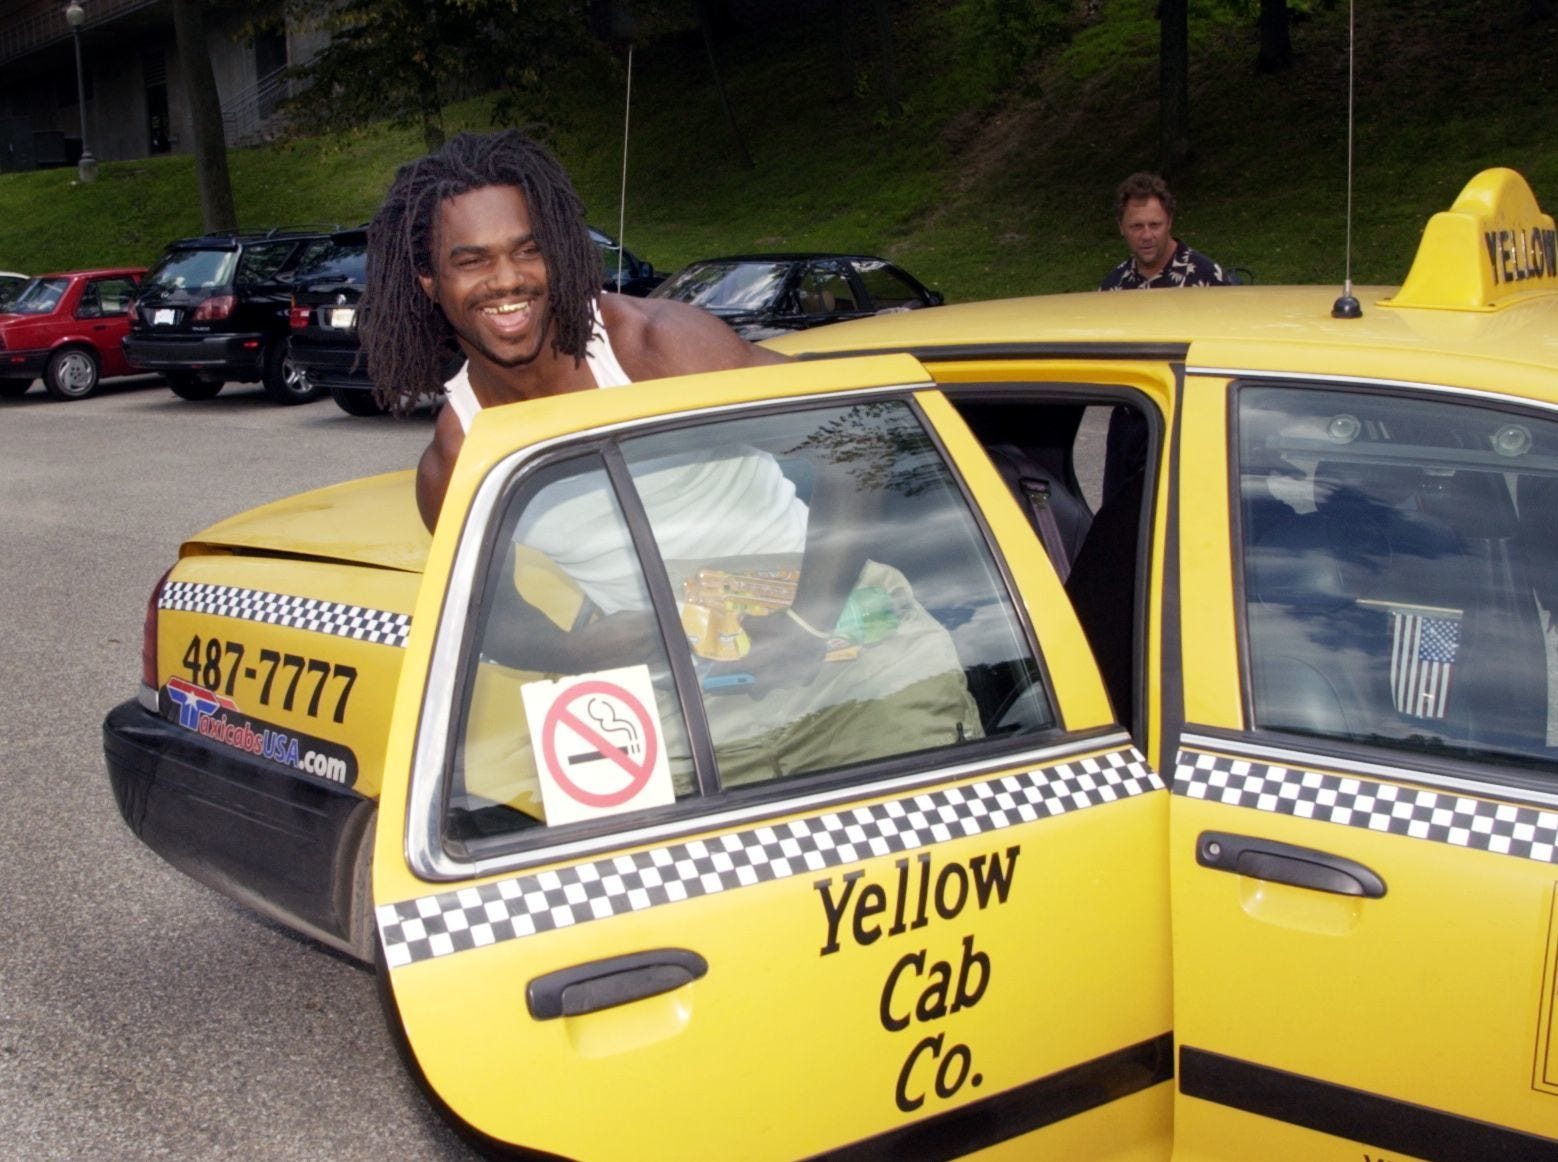 In 2002, Colts running back Edgerrin James made quite an arrival at training camp: He got there in a Yellow Cab.